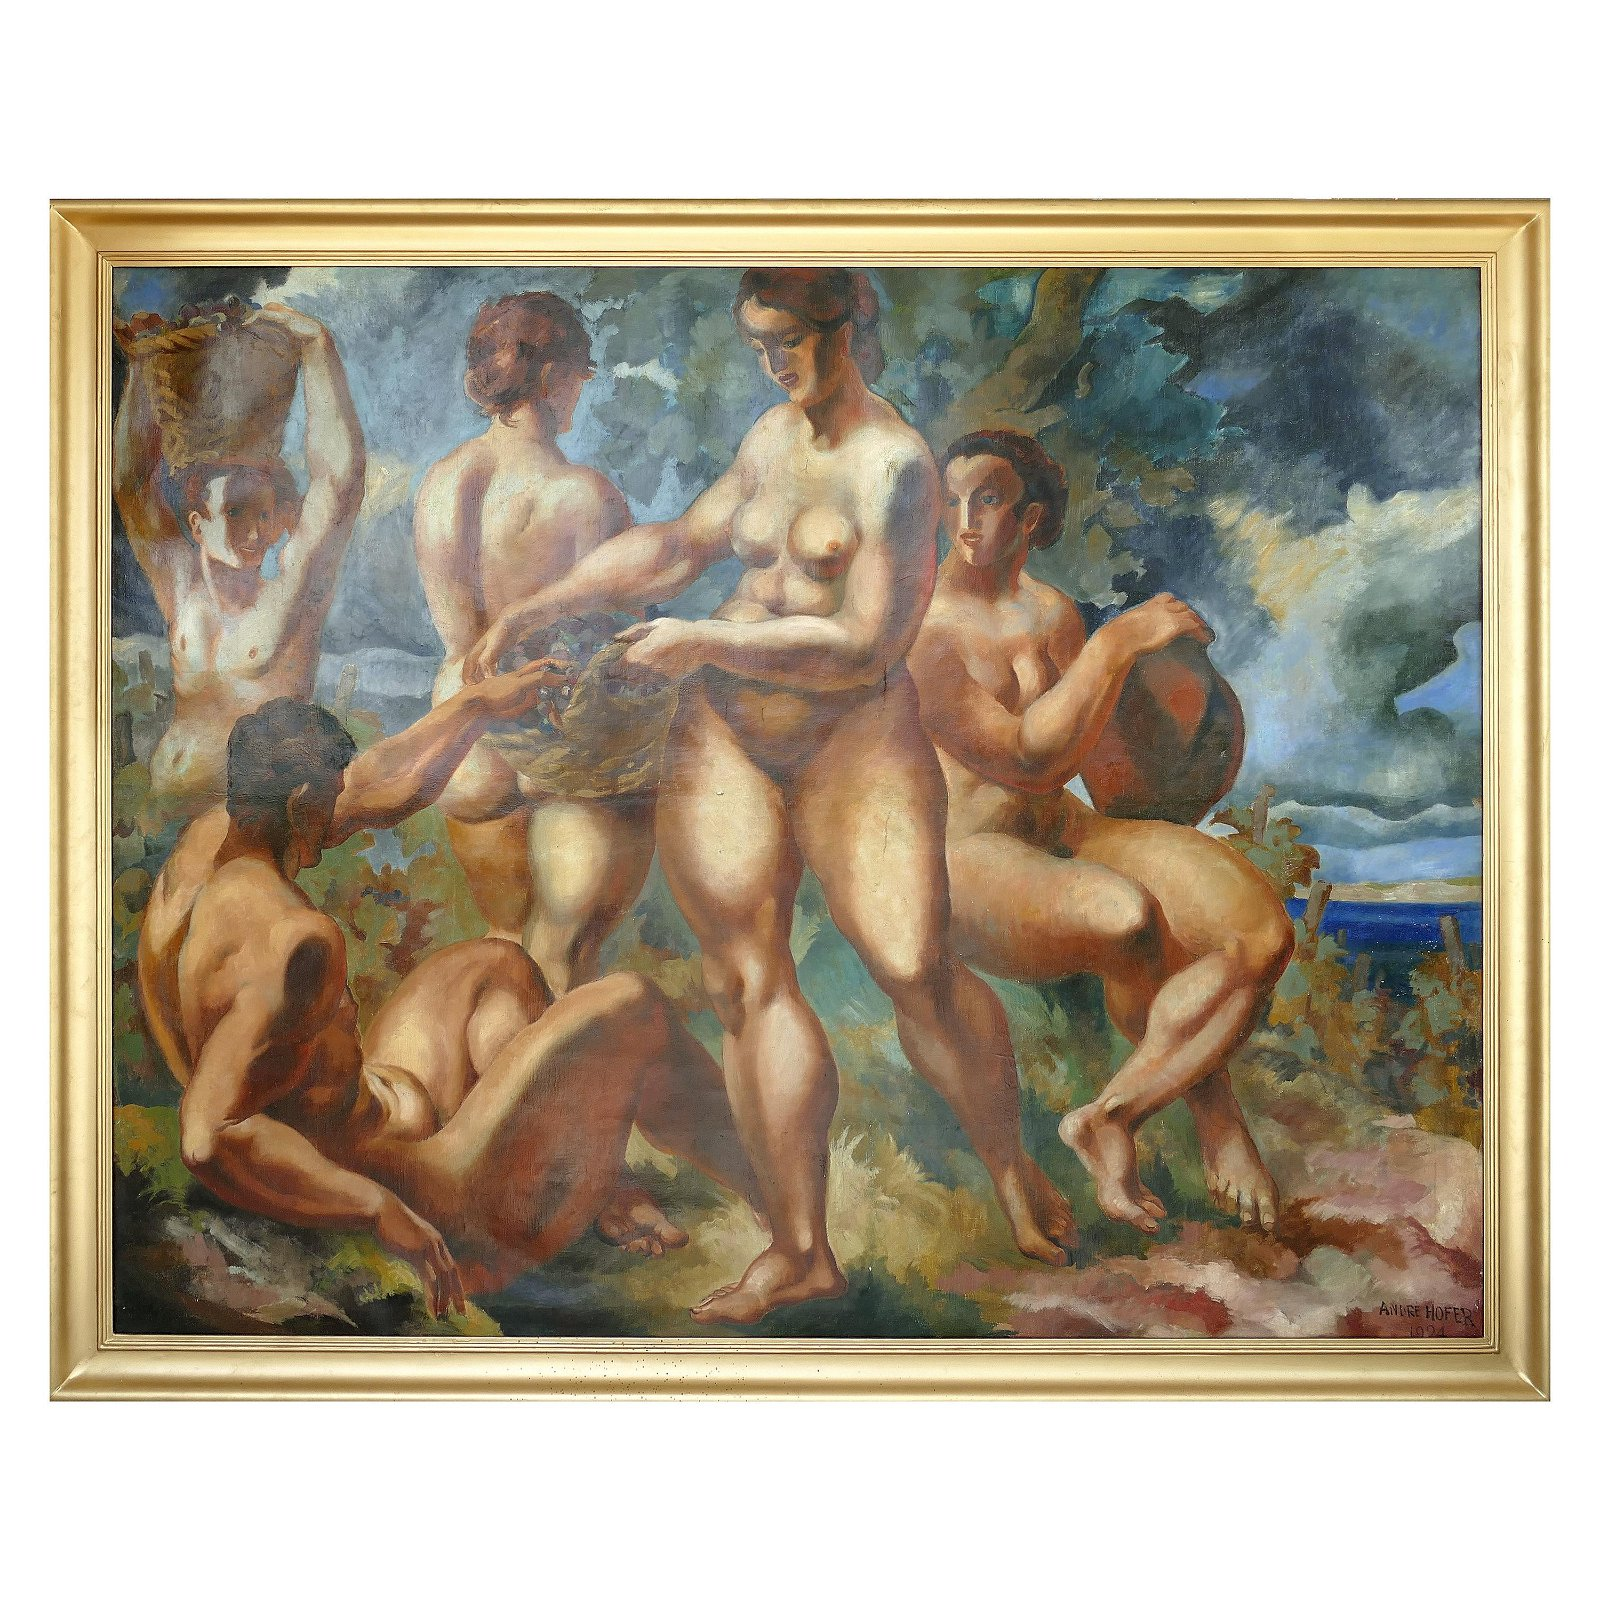 Monumental Art Deco Oil Painting by André Hofer on